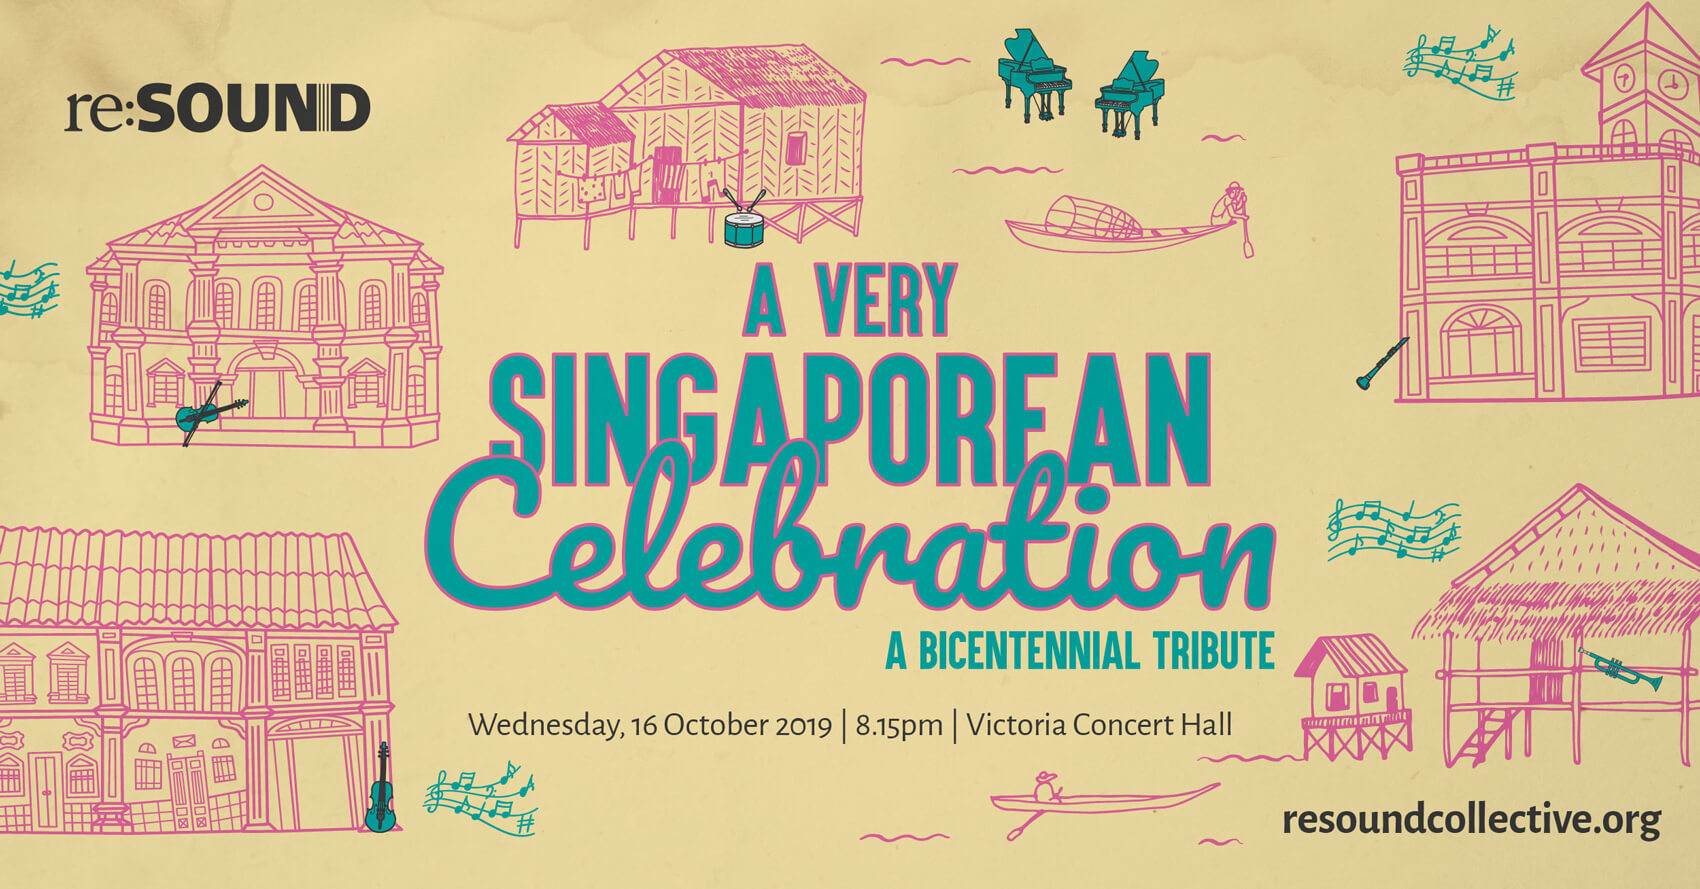 A Very Singaporean Celebration - A Bicentennial Tribute